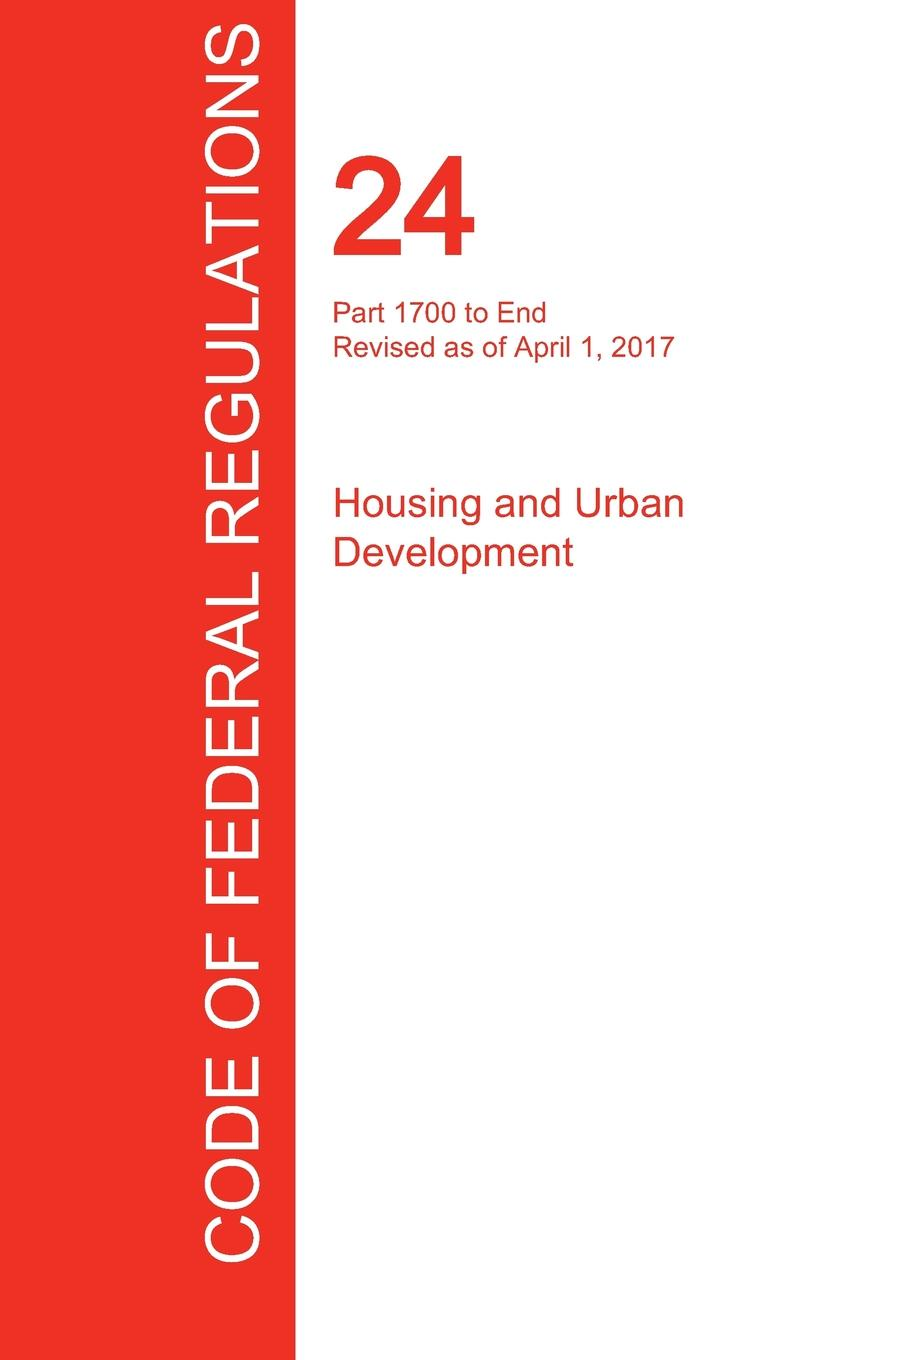 CFR 24, Part 1700 to End, Housing and Urban Development, April 01, 2017 (Volume 5 of 5)